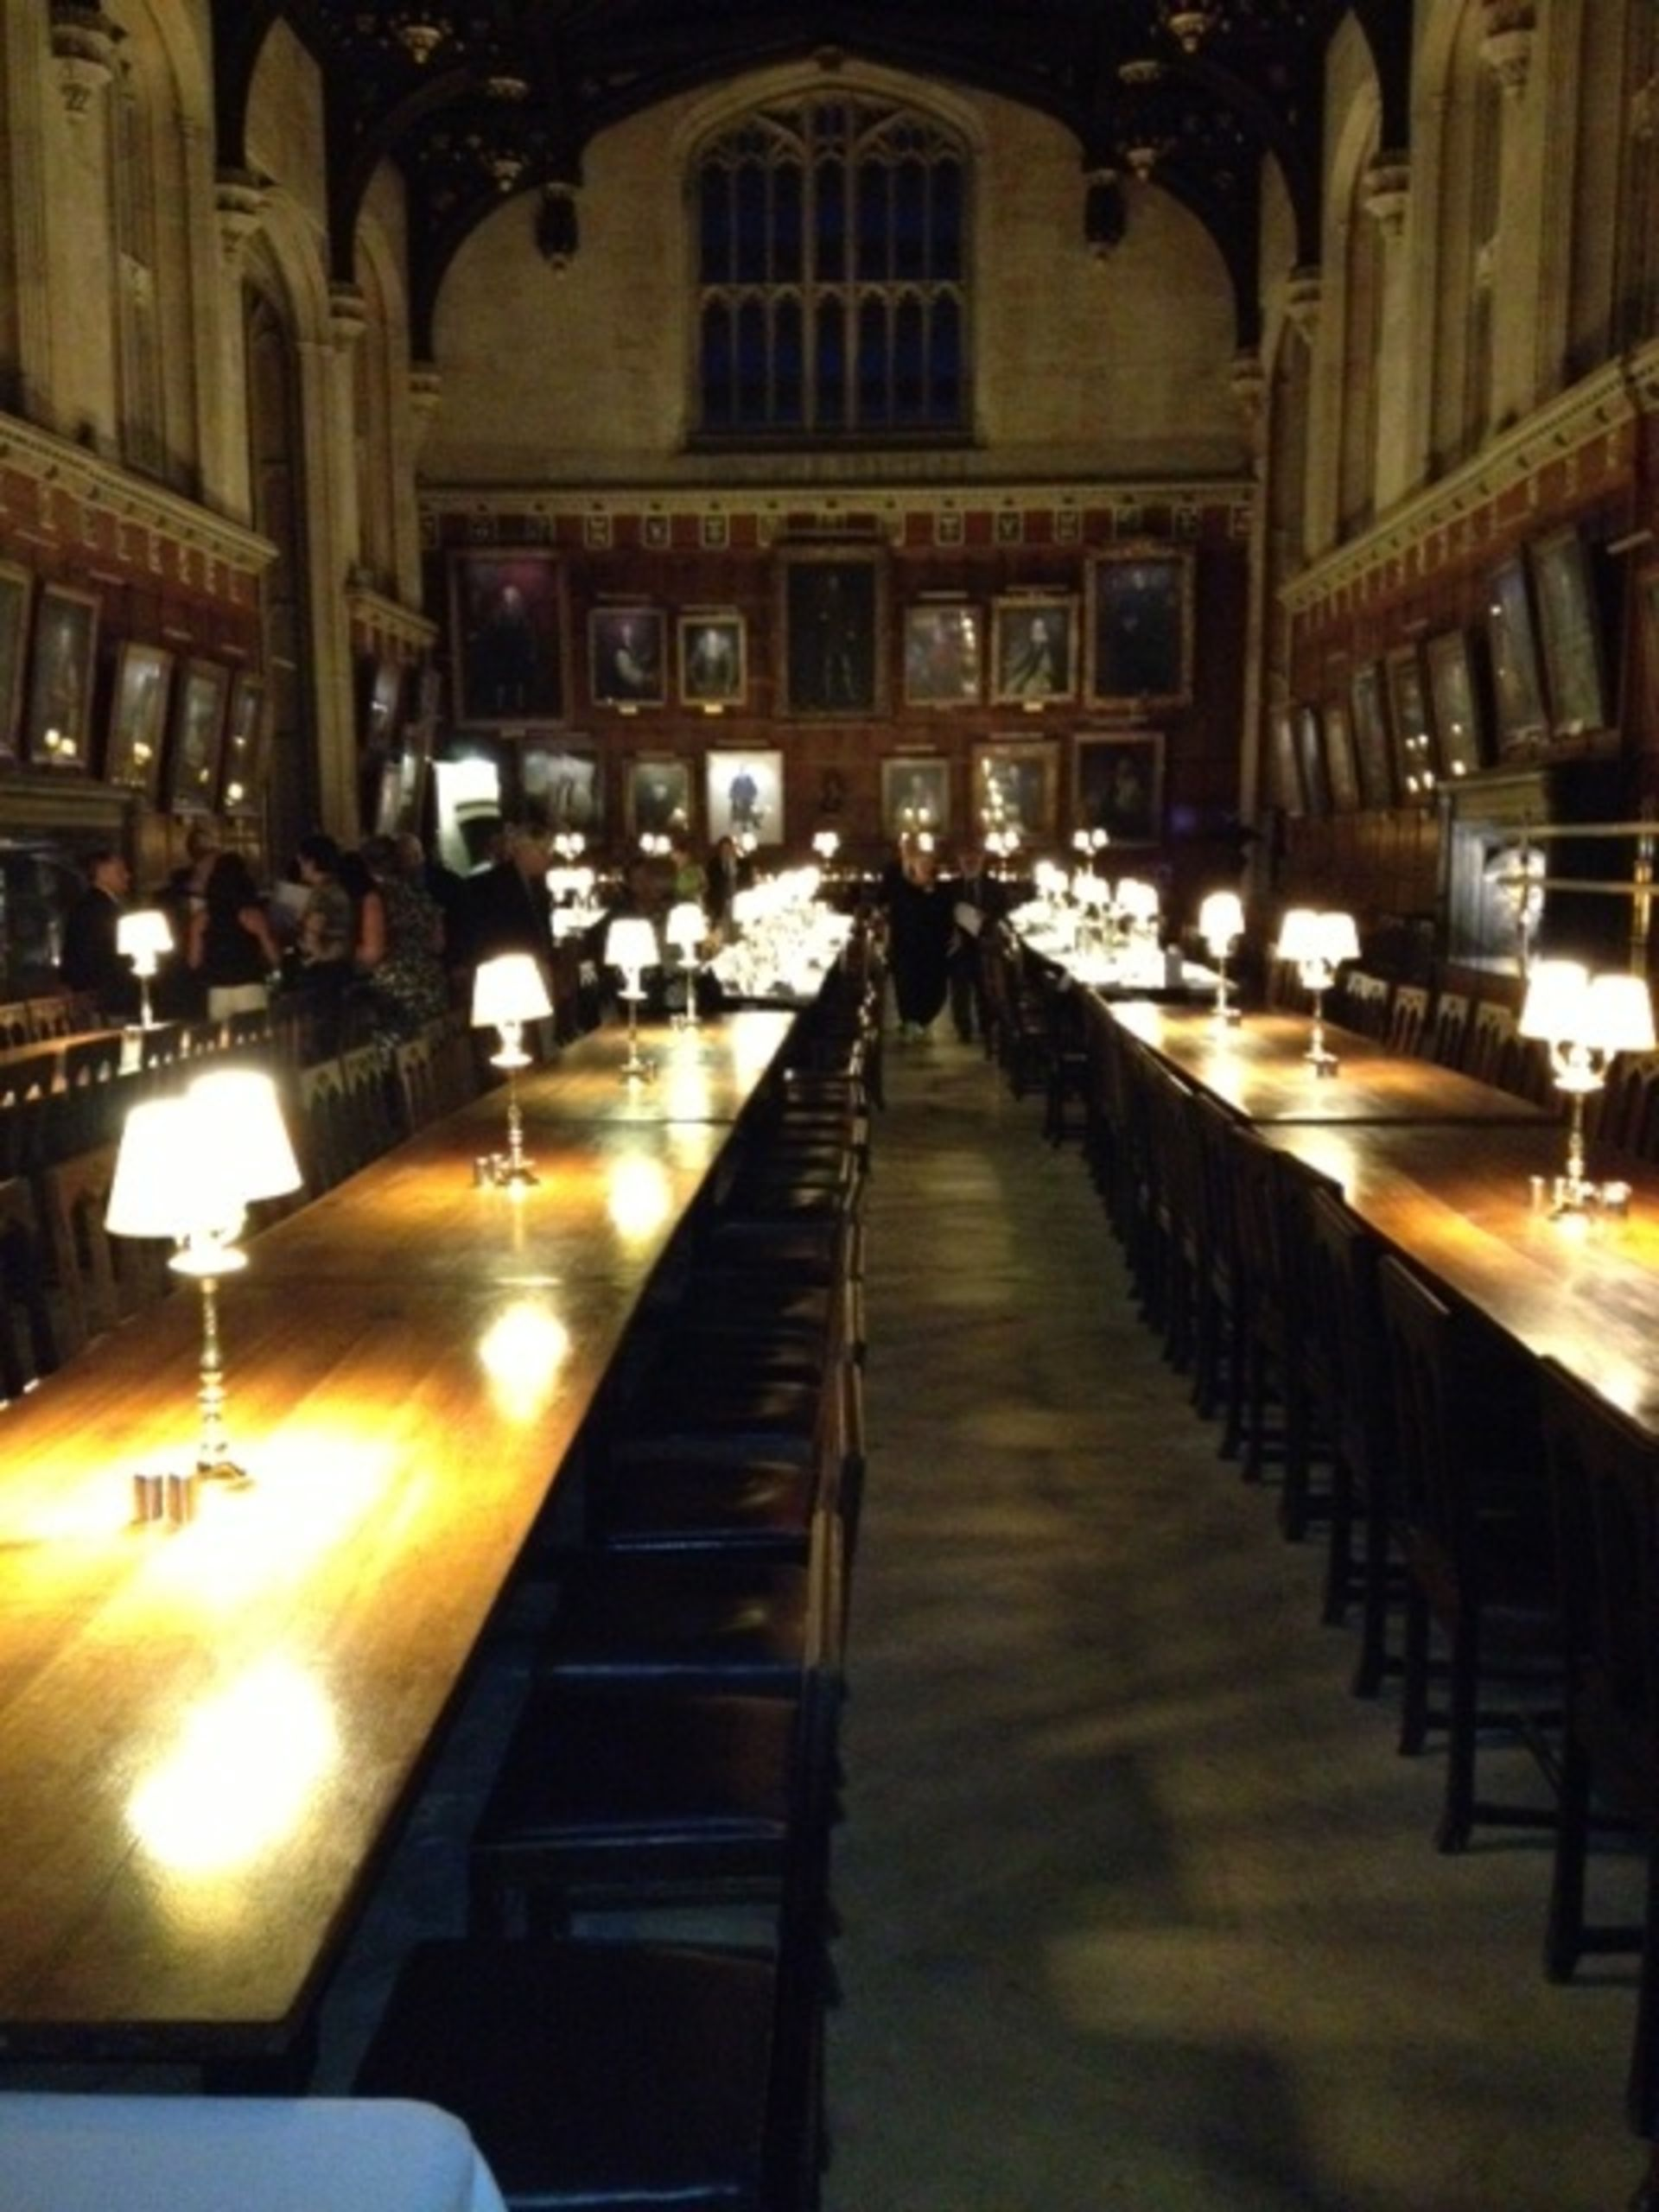 The Great Hall or Hogwarts?